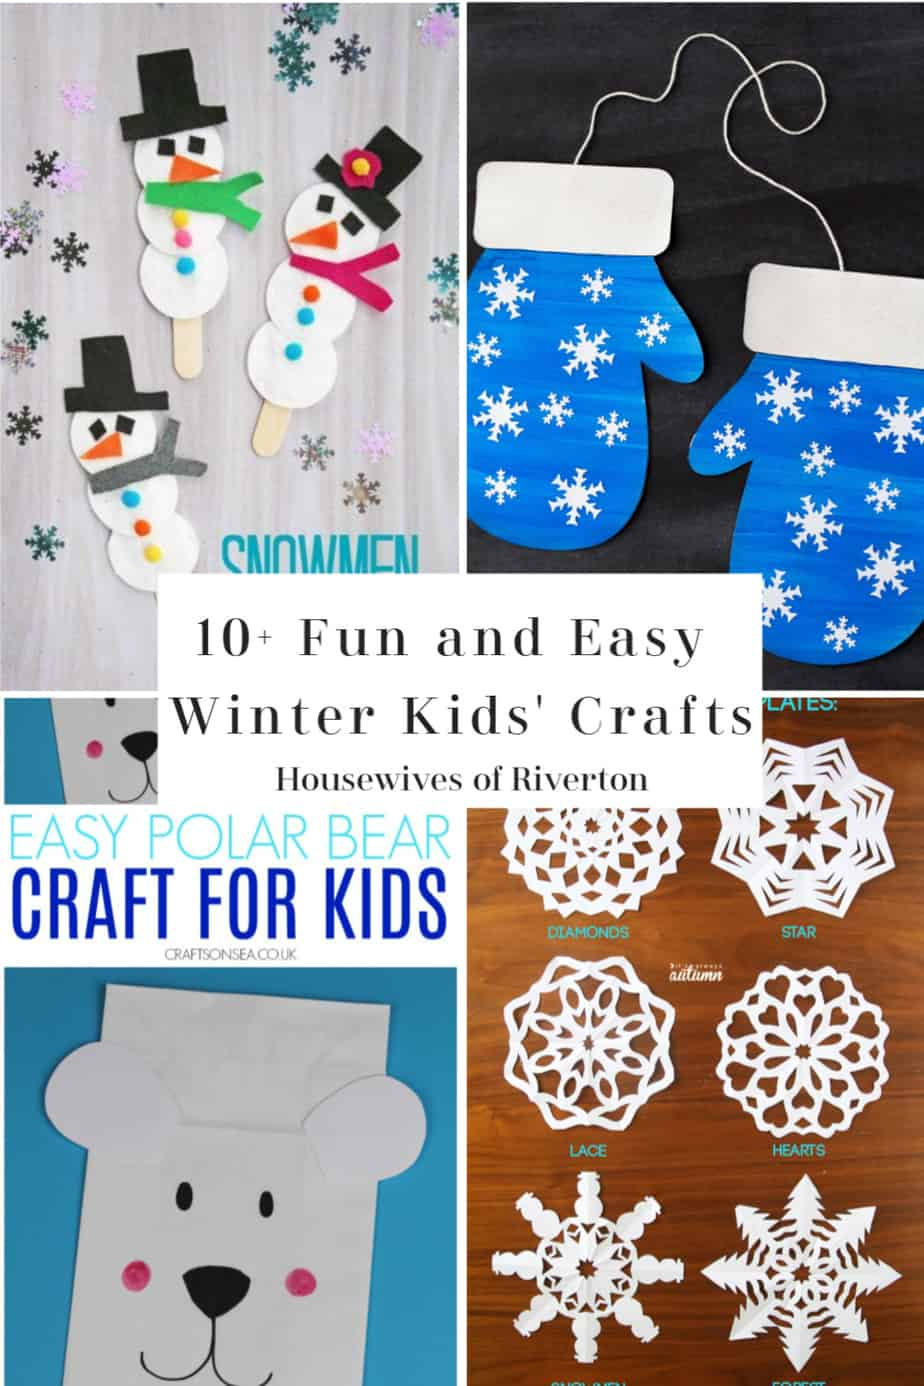 10+ Fun and Easy Winter Kids' Crafts | www.housewivesofriverton.com